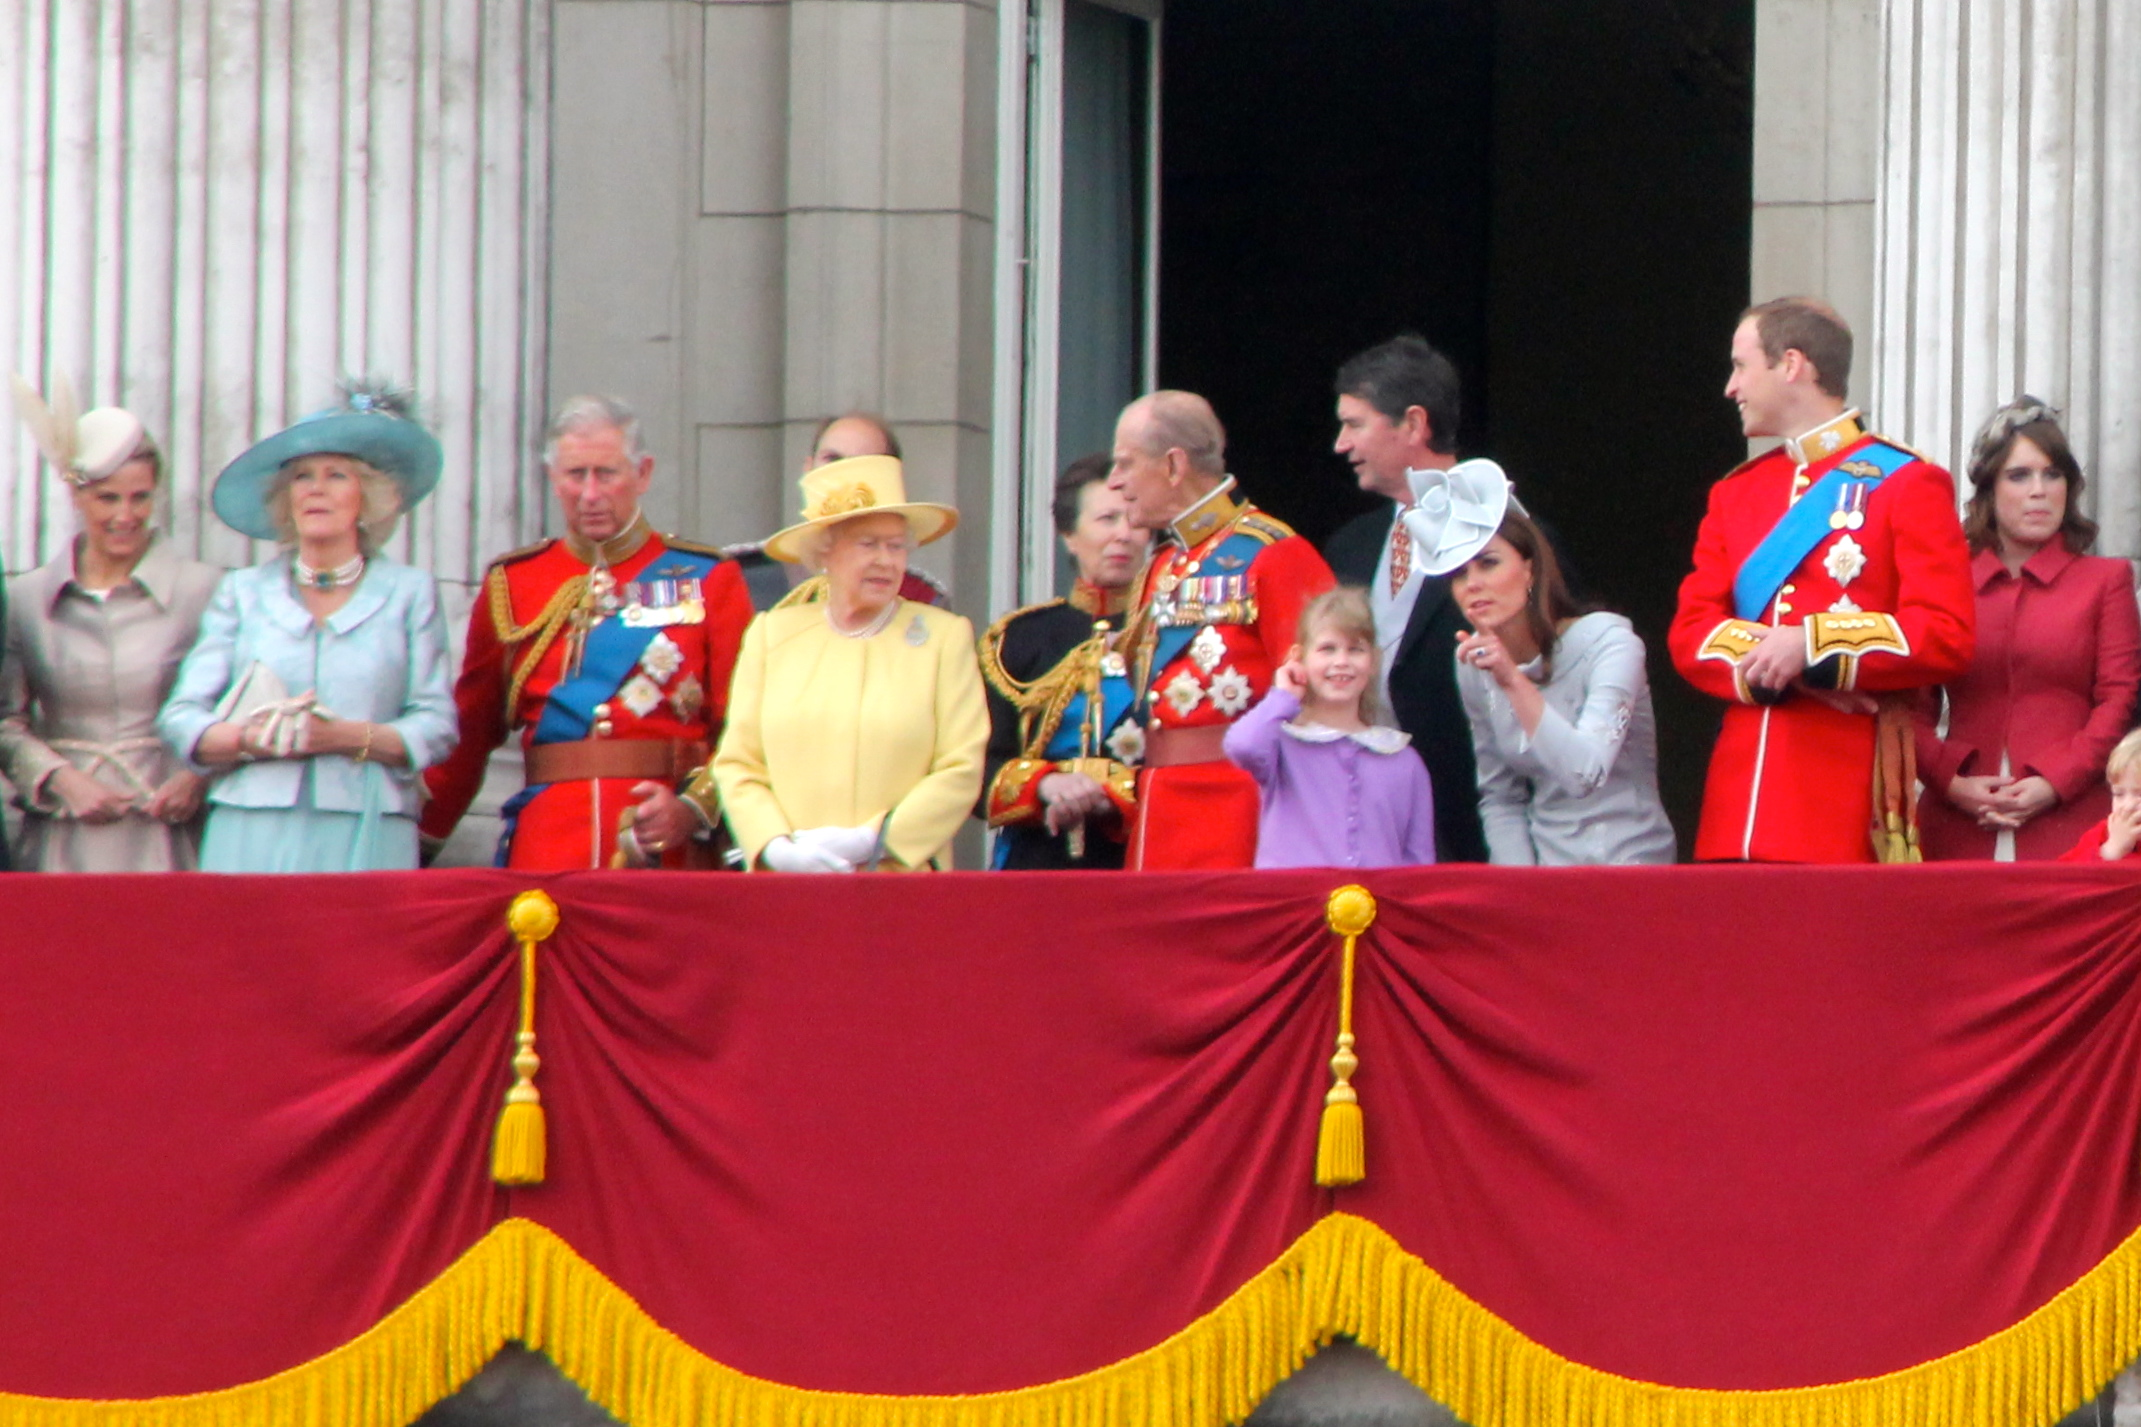 6 questions about the future of the British Monarchy